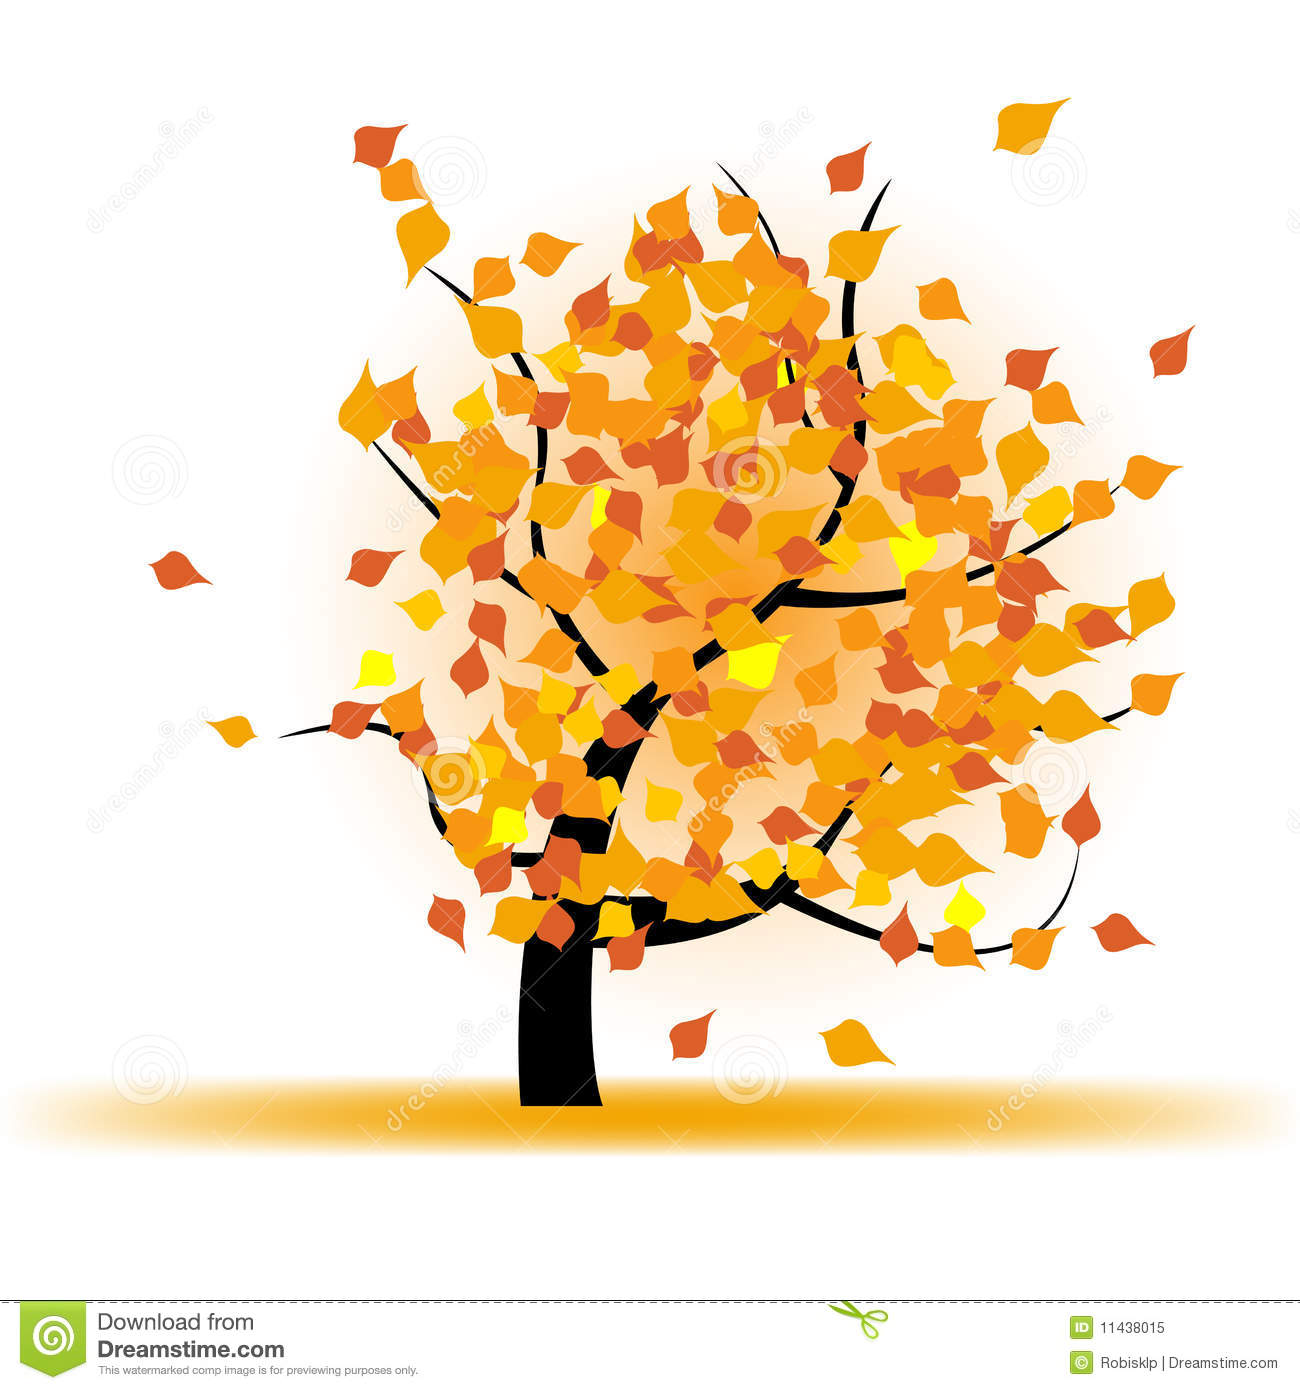 Autumn Tree With Falling Leaves Royalty Free Stock Photo - Image ...